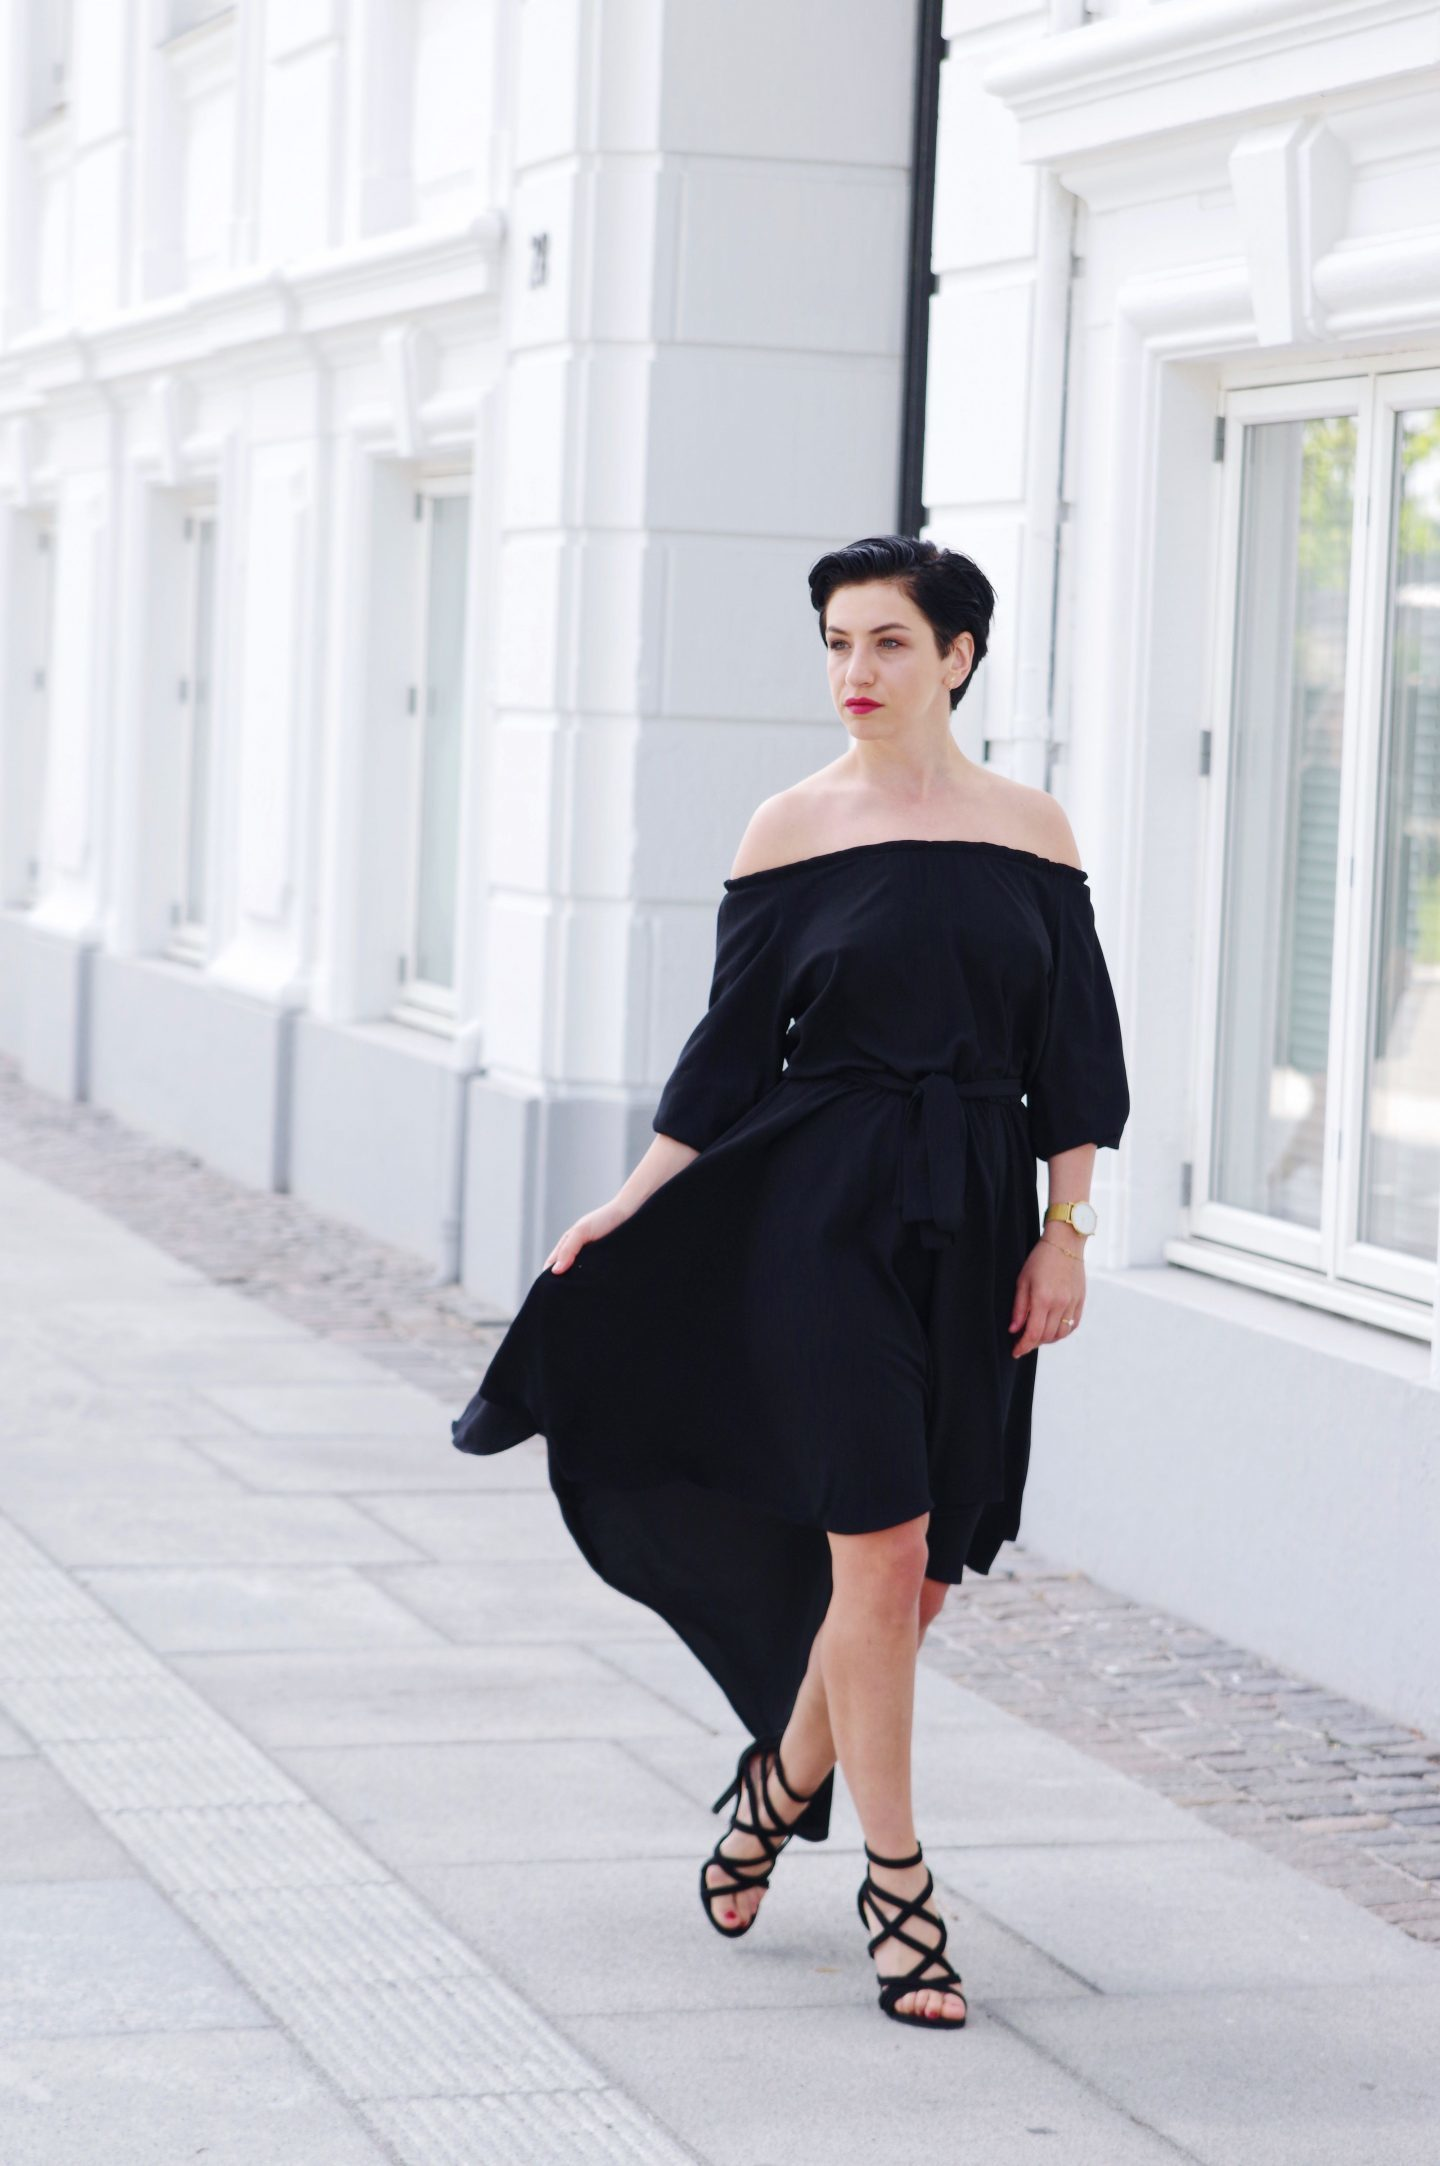 The little black, summer dress, cocktail dress